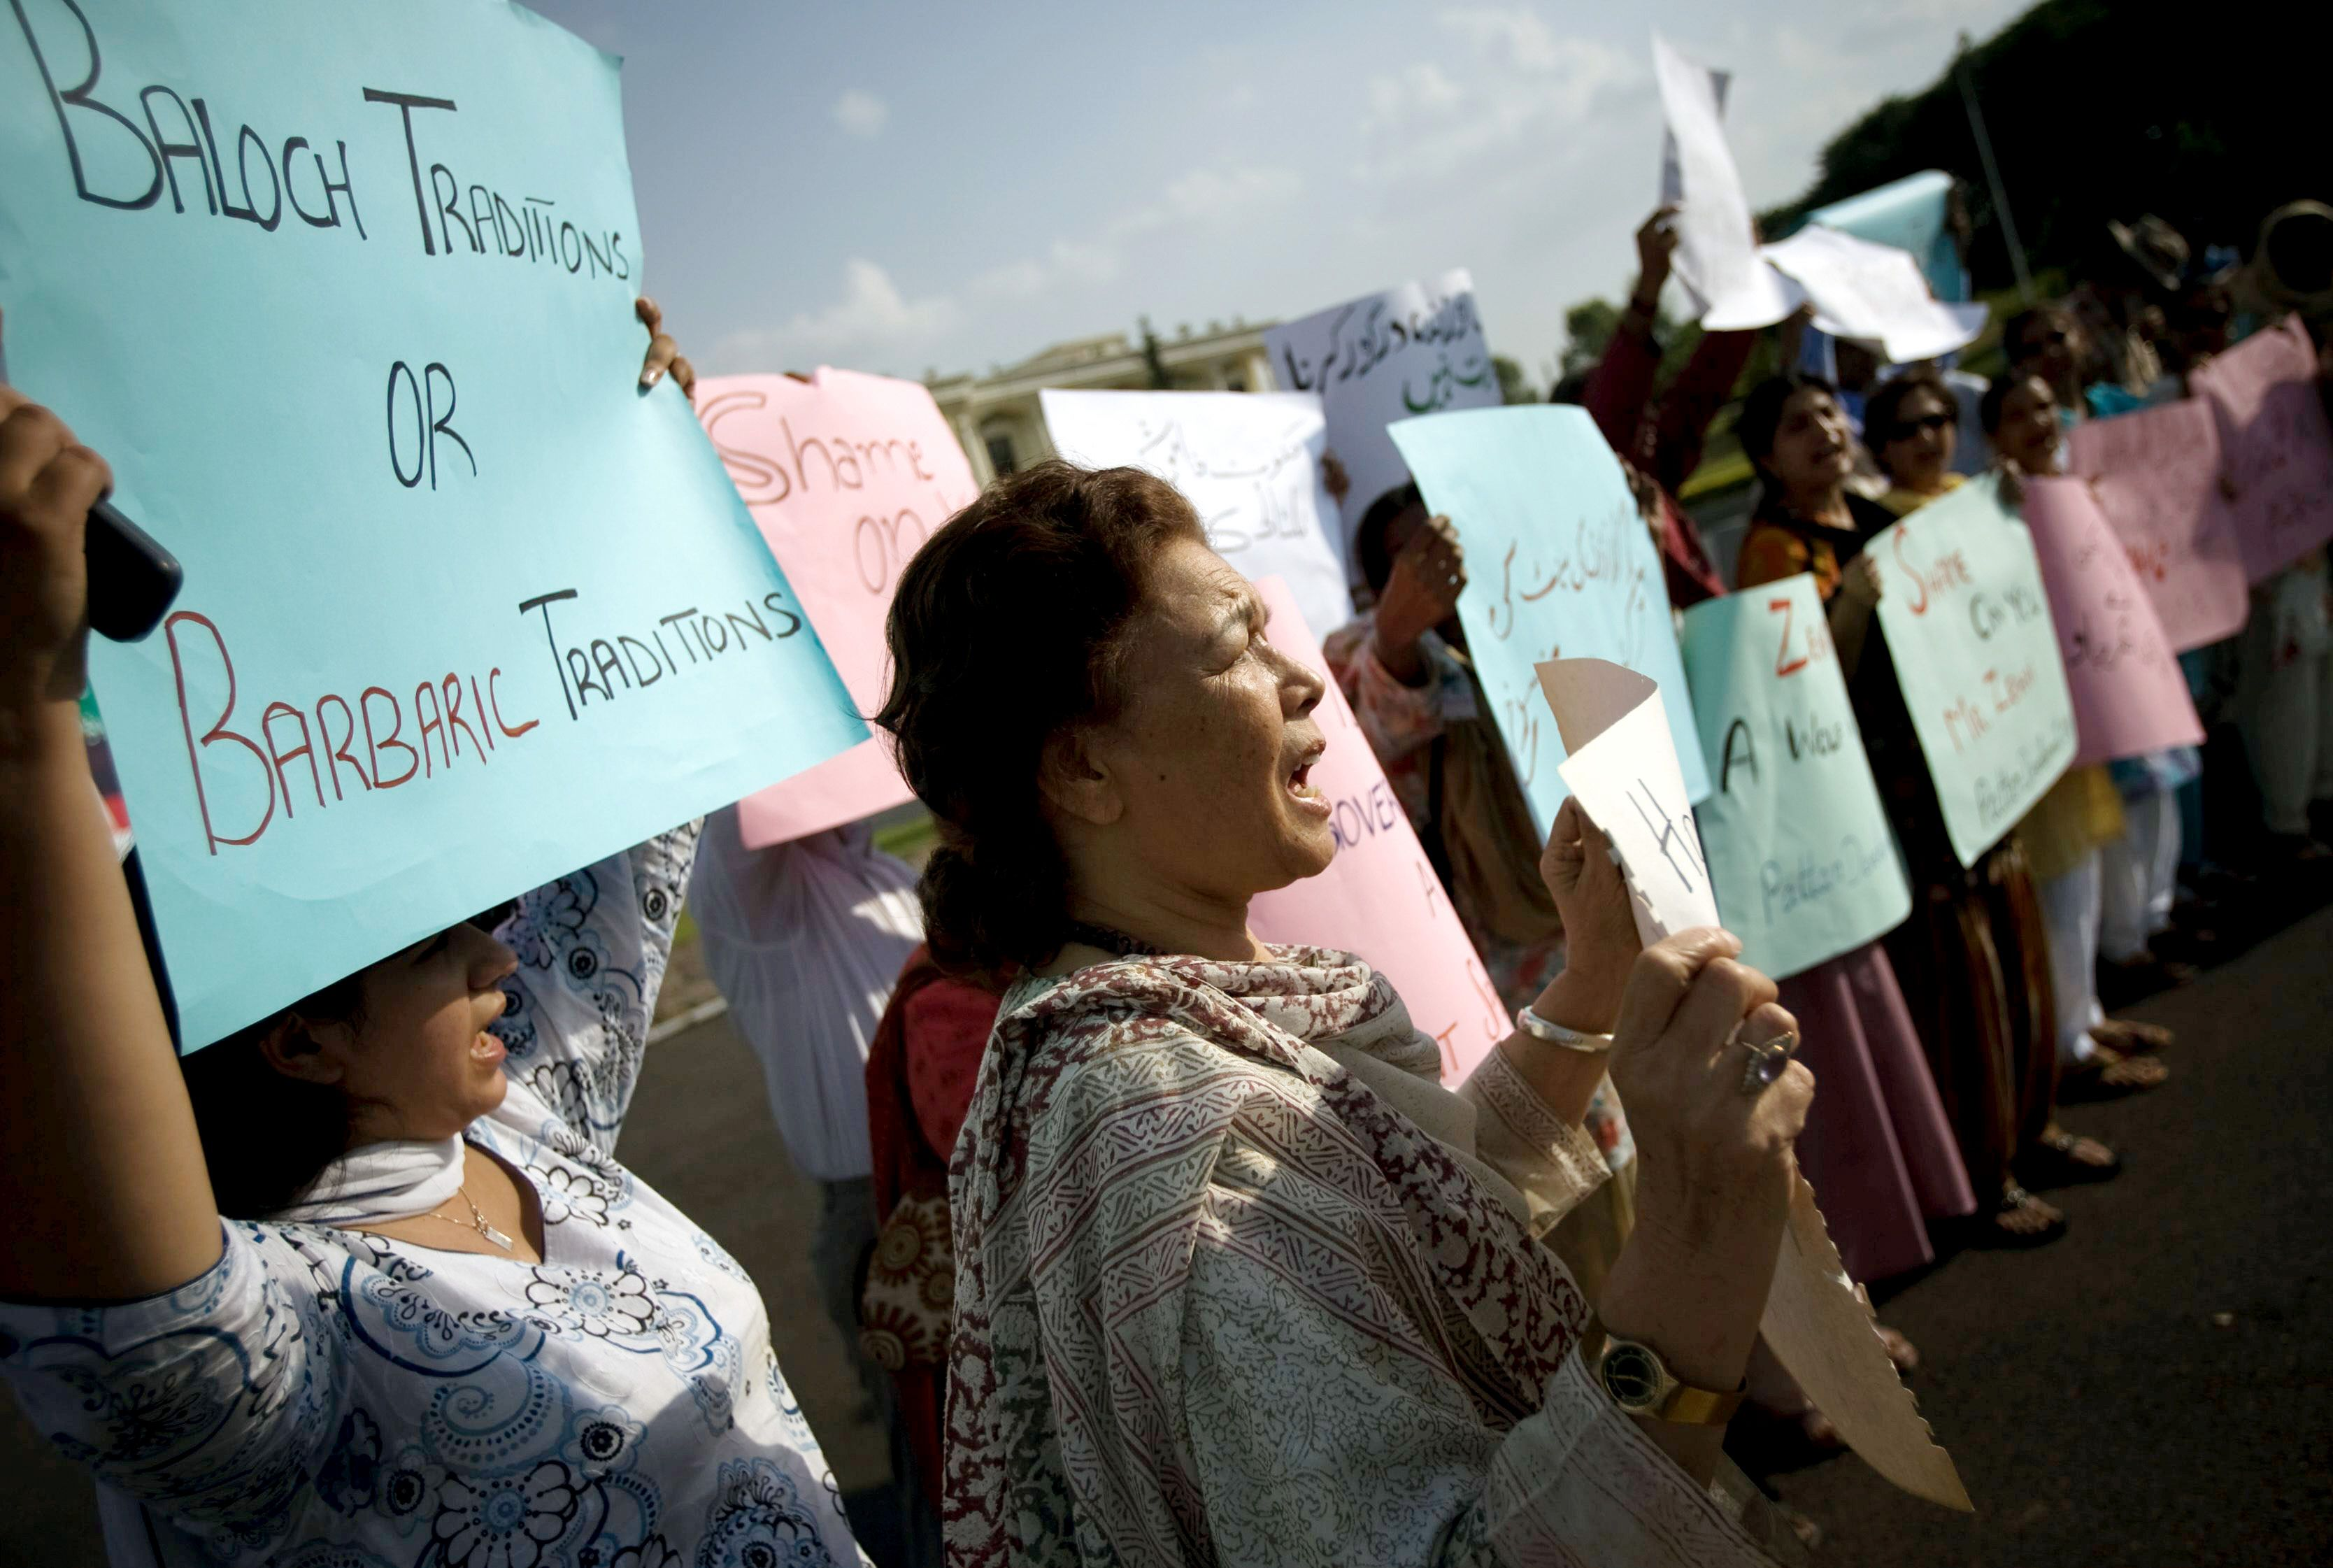 Pakistani mother, 2 daughters slain in brutal 'honor killing' over family video